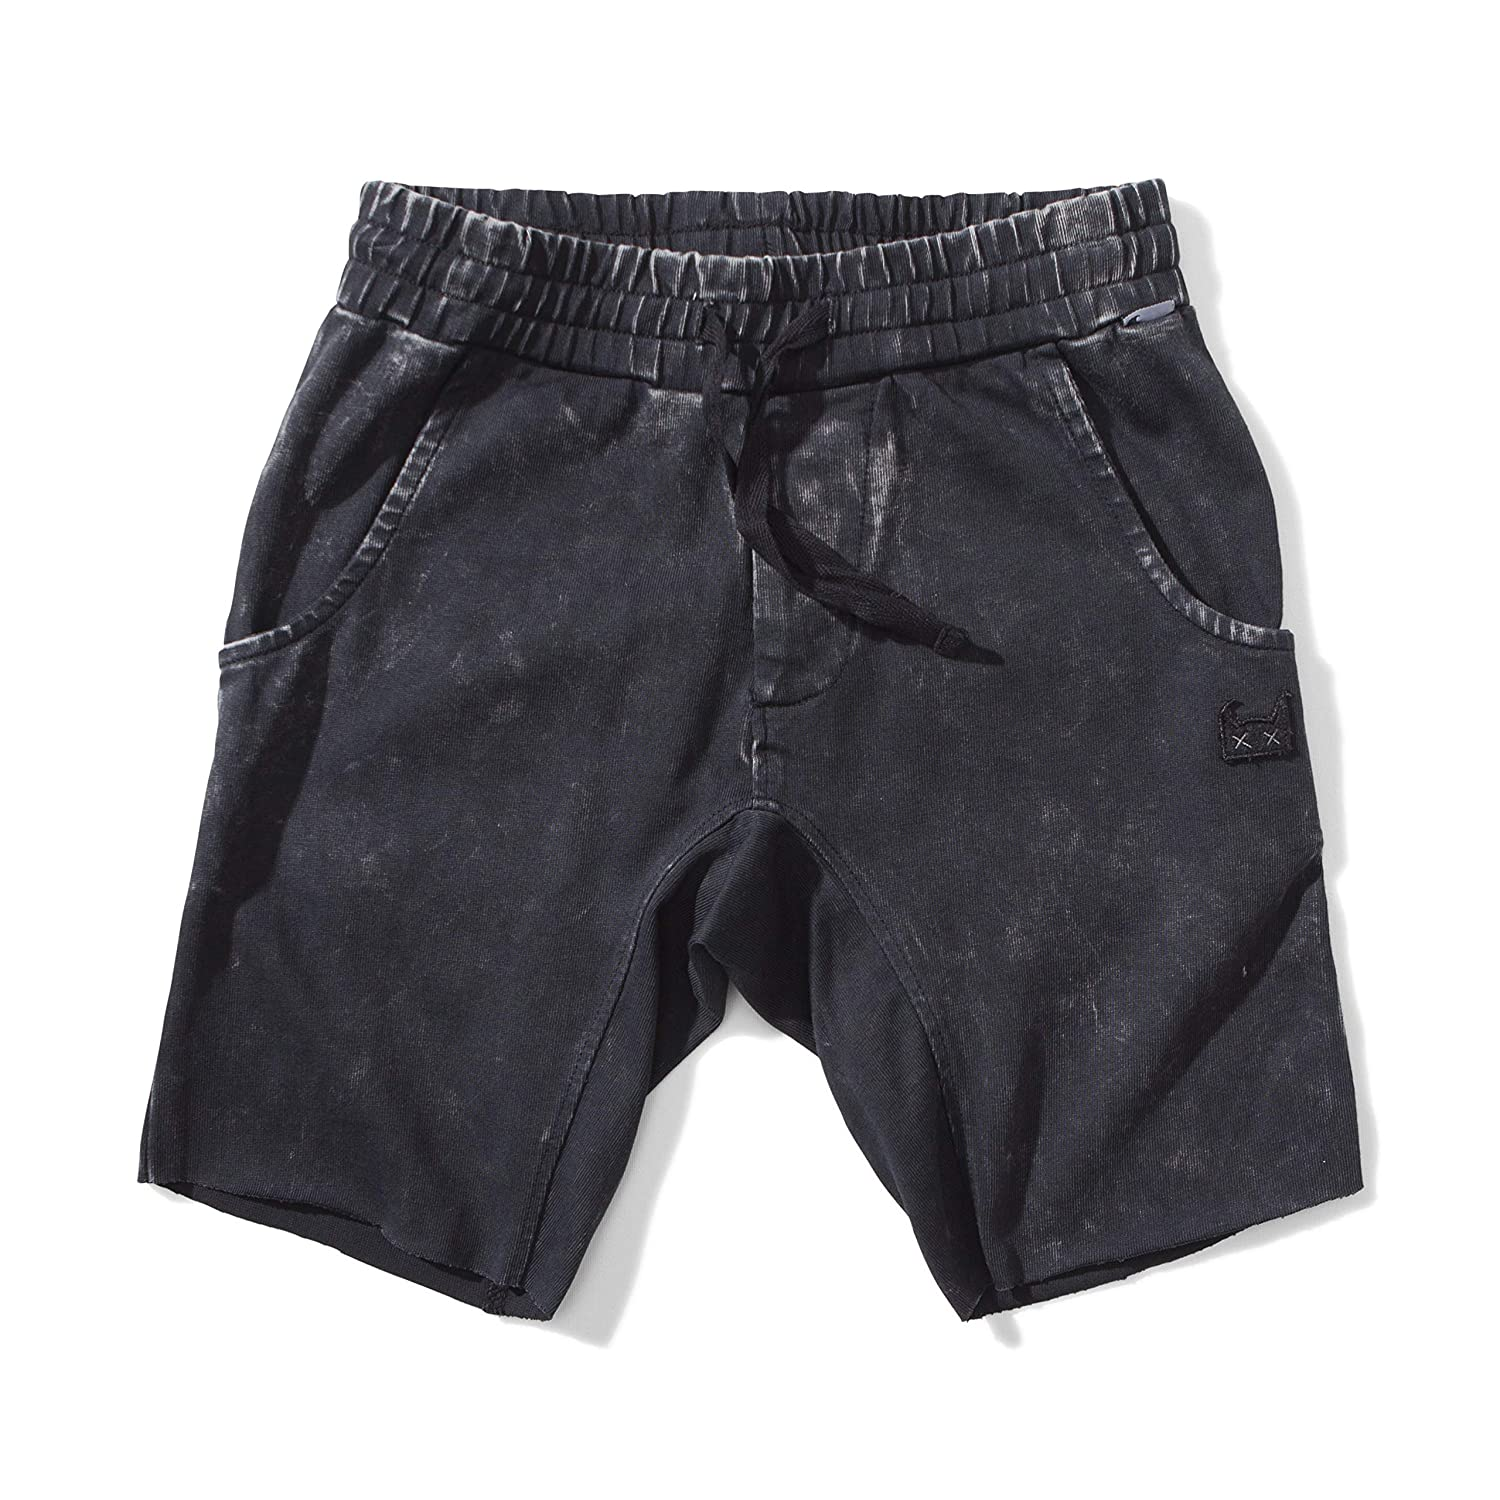 Size 7 Youth Boys Ollie Track Shorts Black Munster Kids Munster